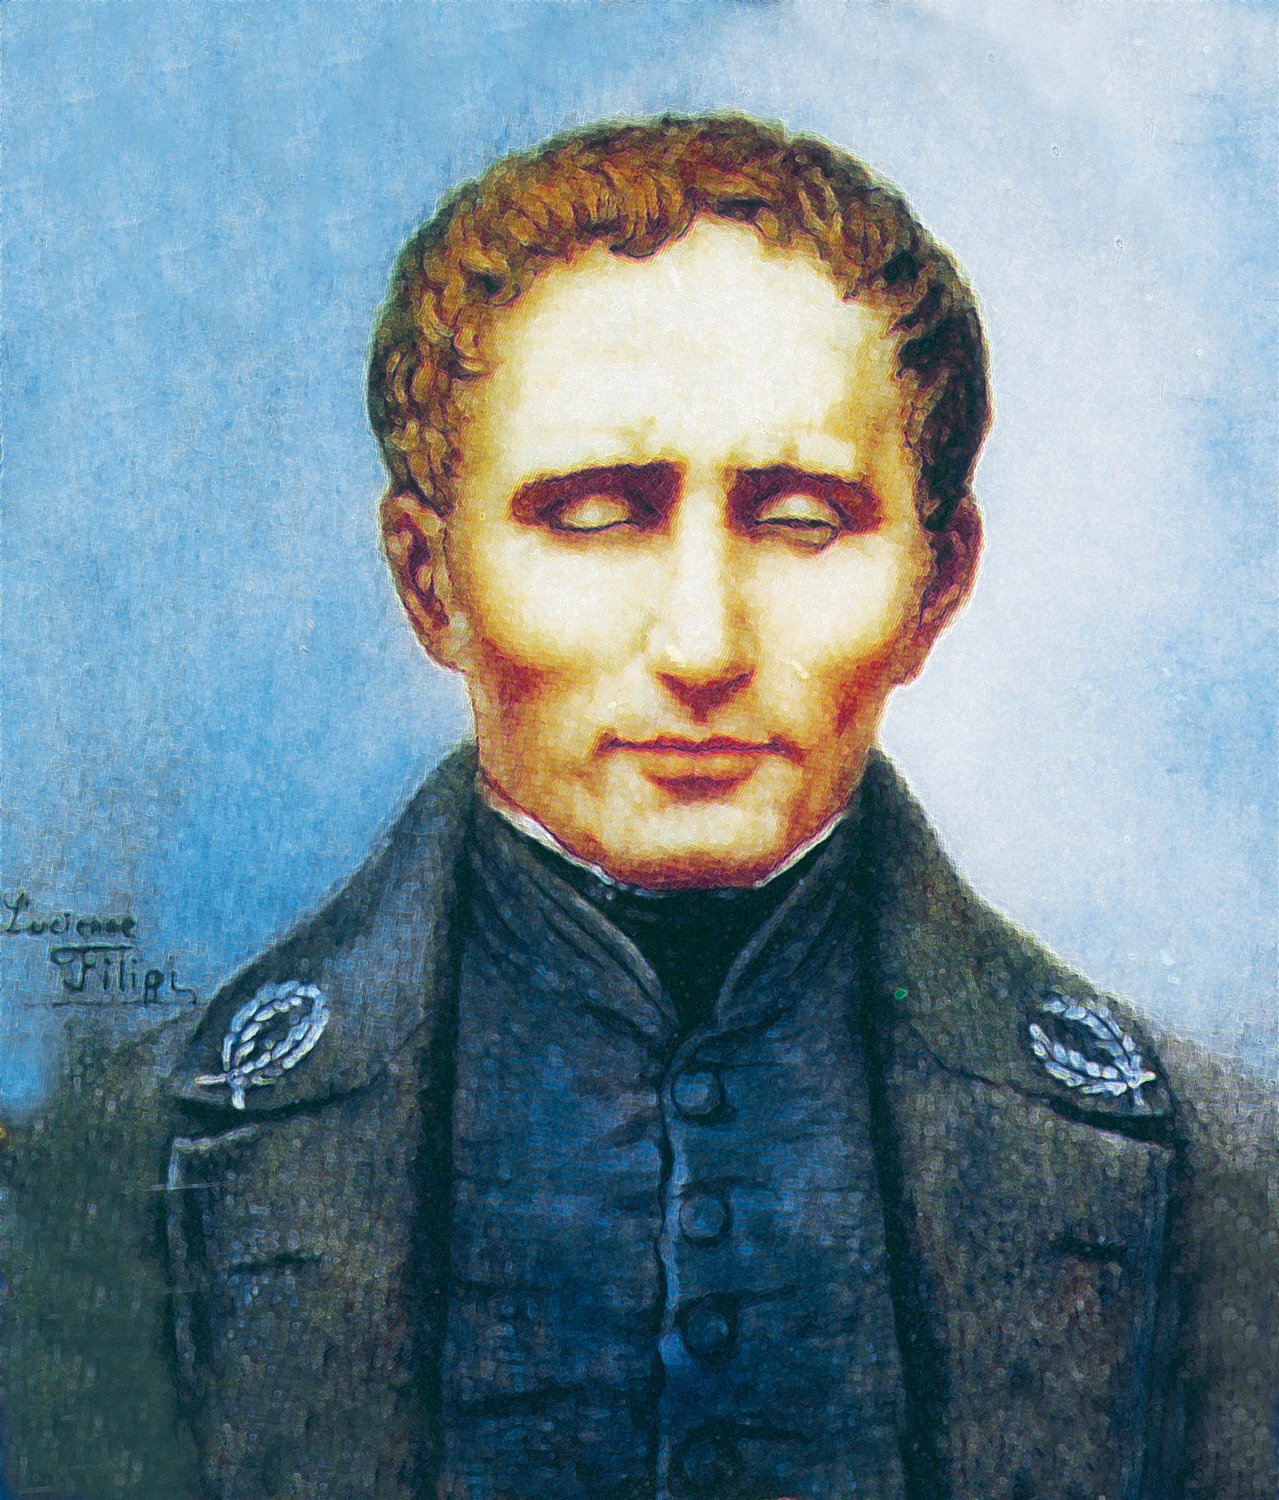 Louis Braille Png - Surprising Facts about Louis Braille that You didn't Know - TechStory